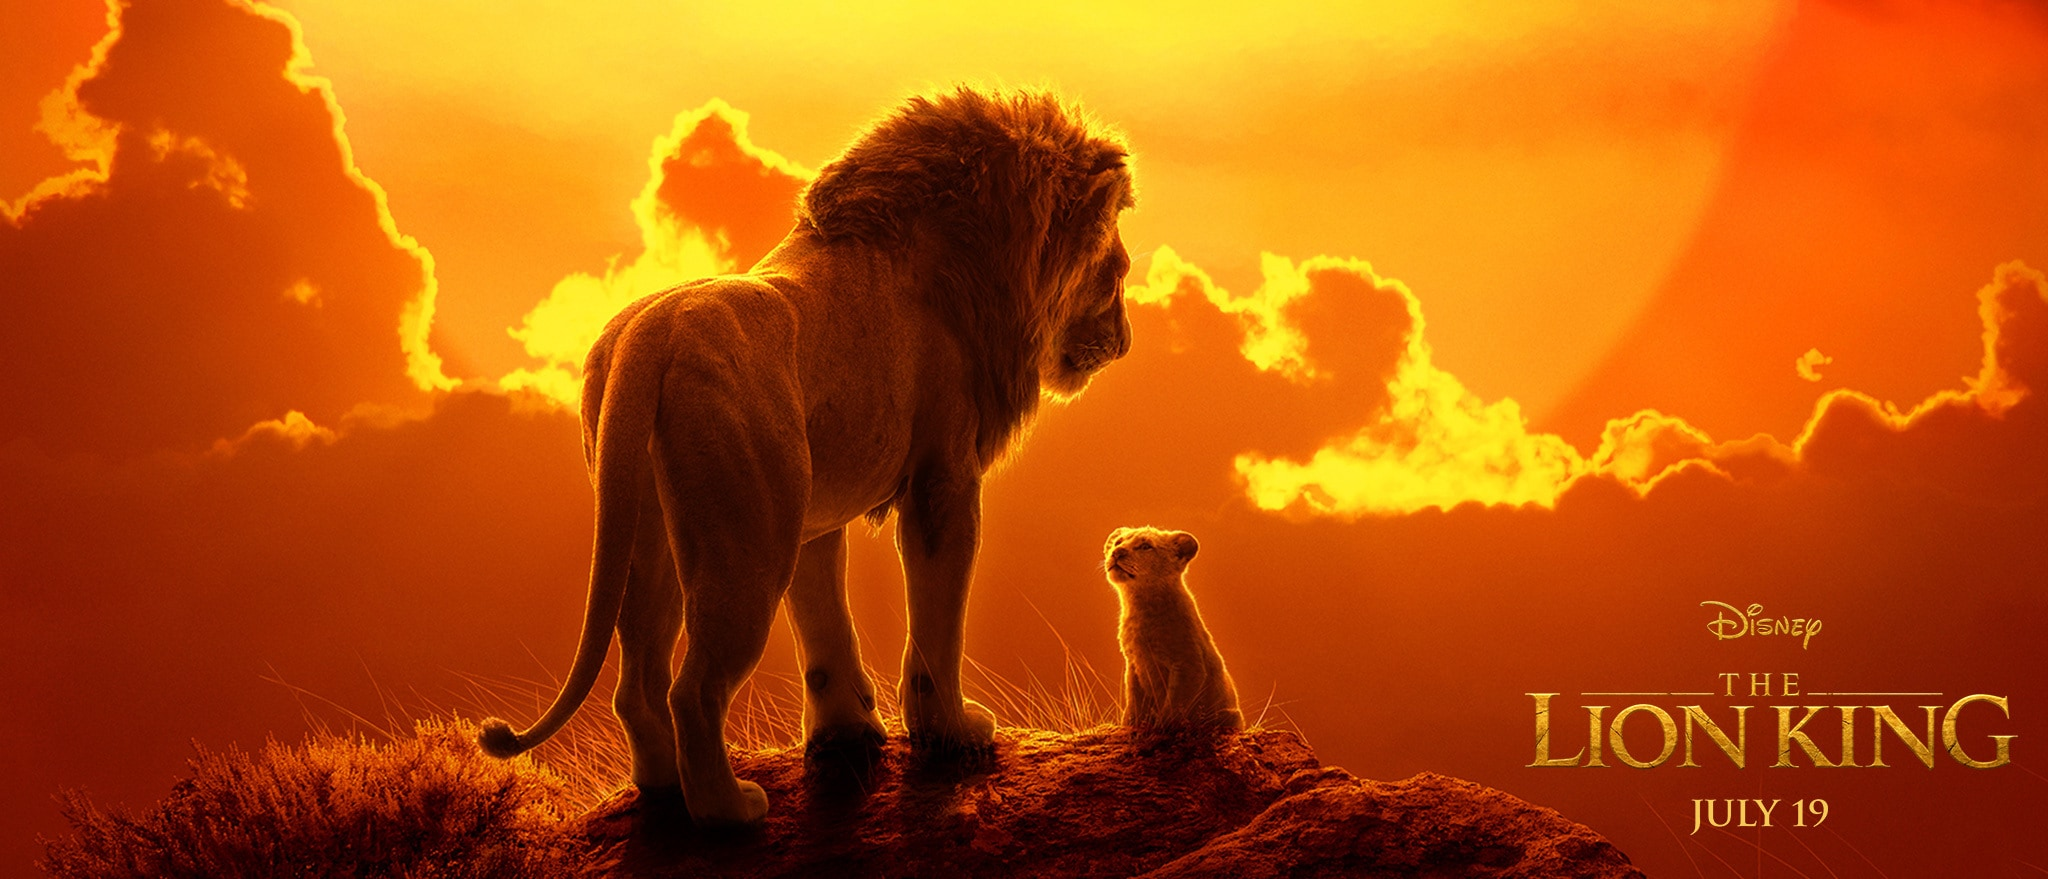 disney the lion king movie 2019